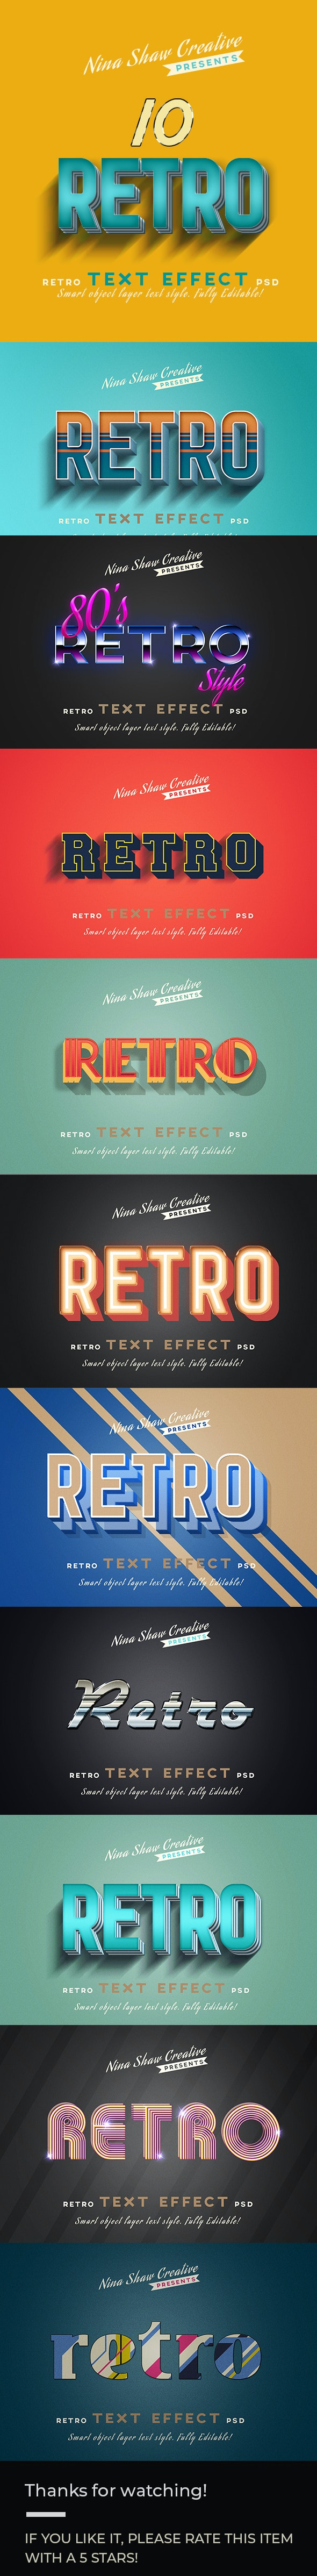 Retro/Vintage Text Effects - Text Effects Actions